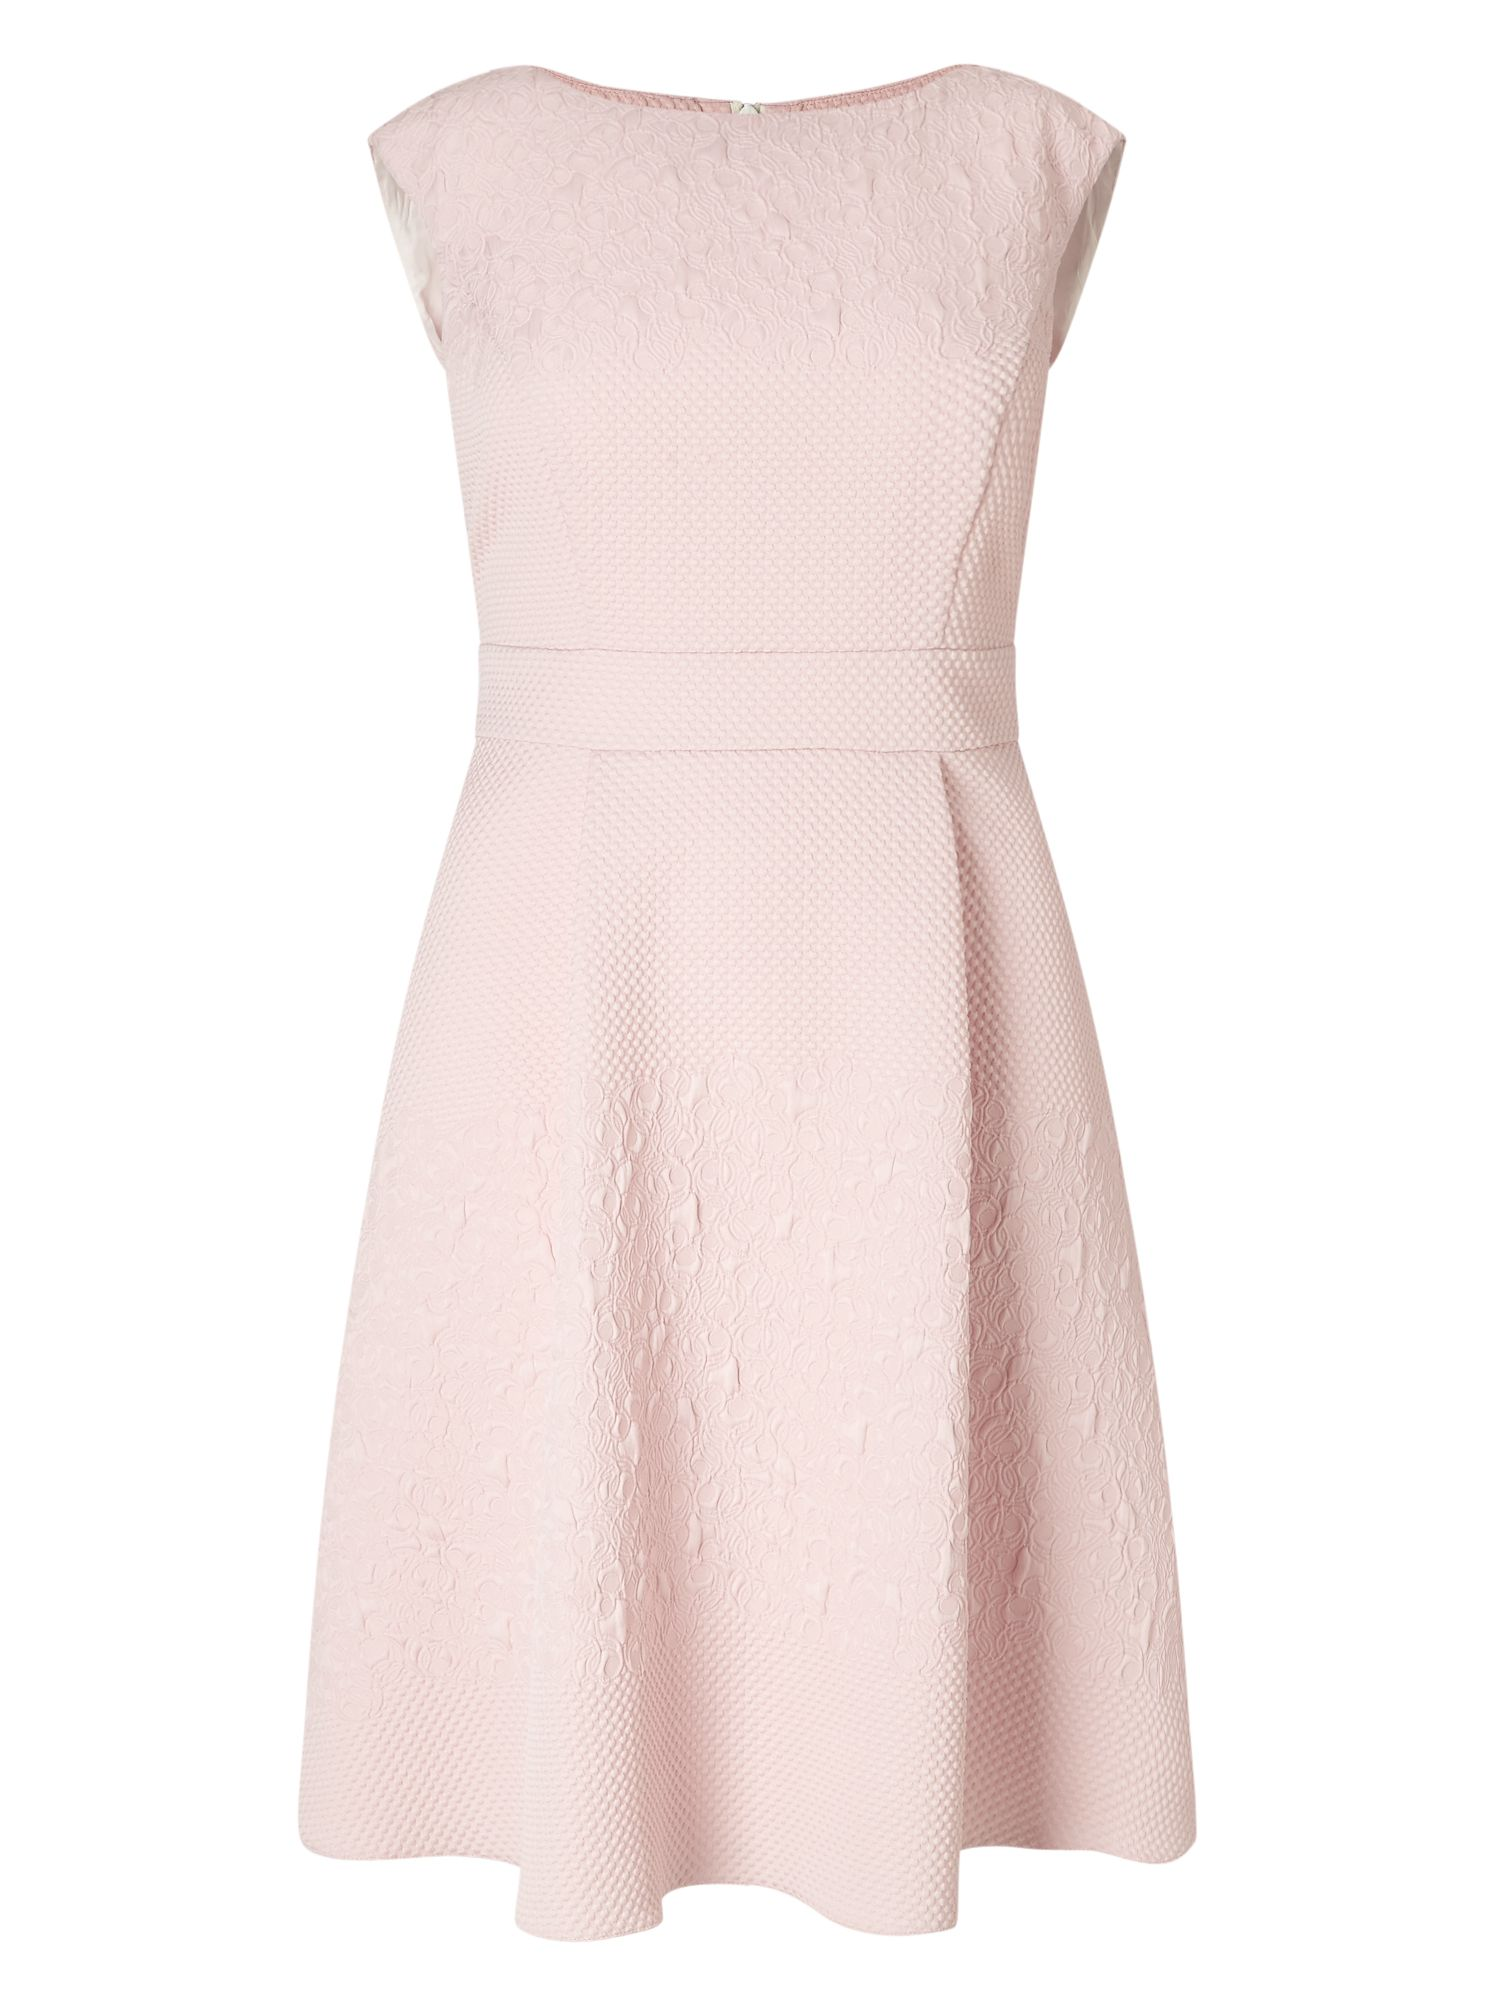 Studio 8 Gaynor Dress, Pink